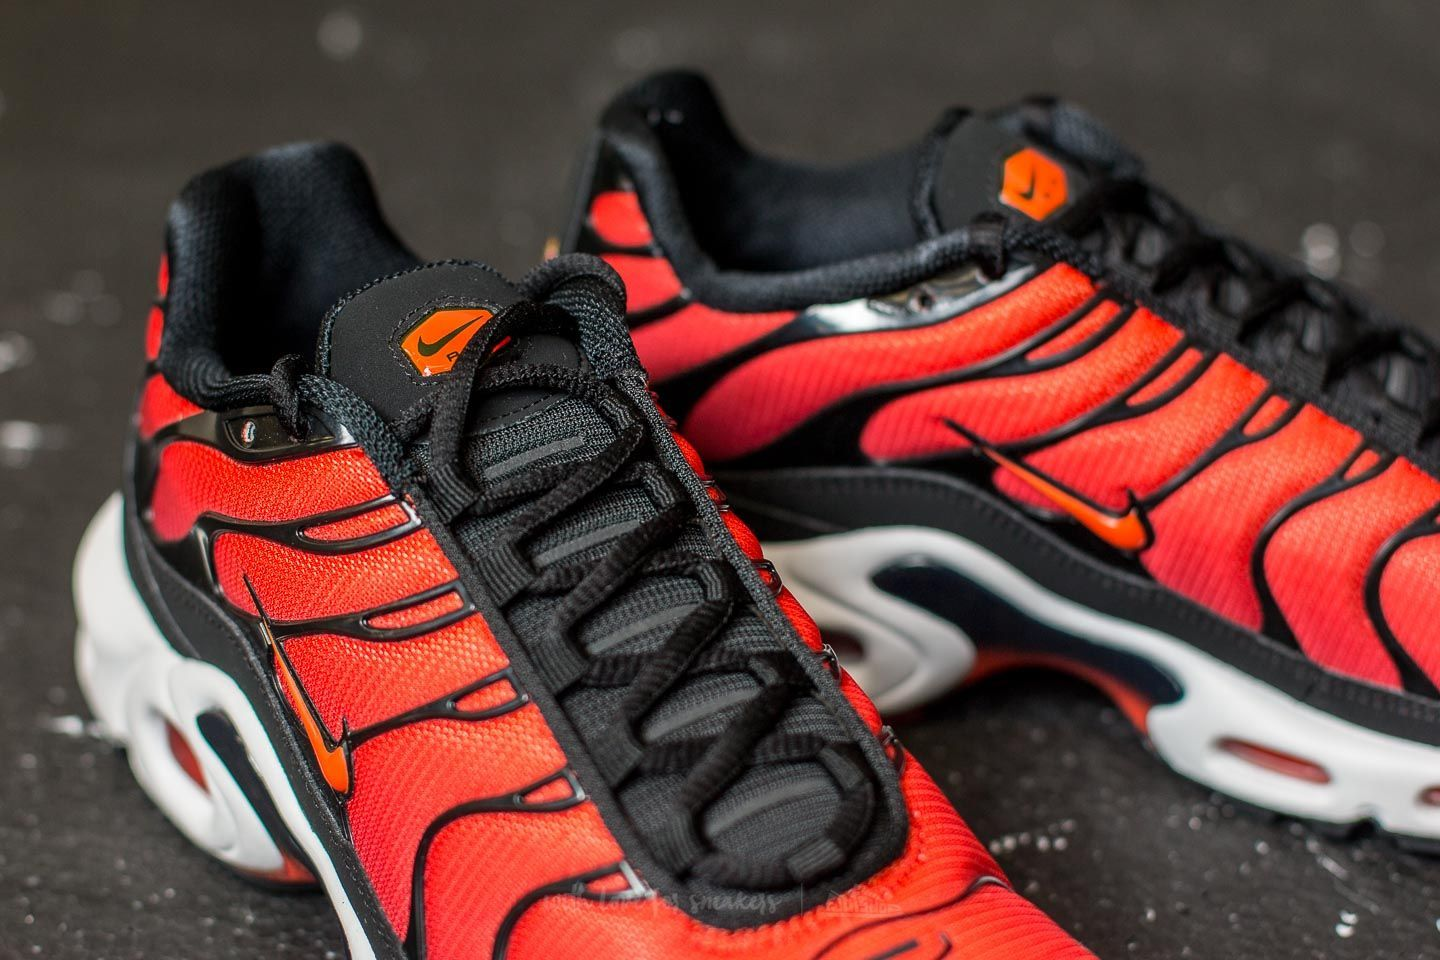 5c913da26b2d The Nike Air Max Plus is featured in a new Team Red colorway for this Fall